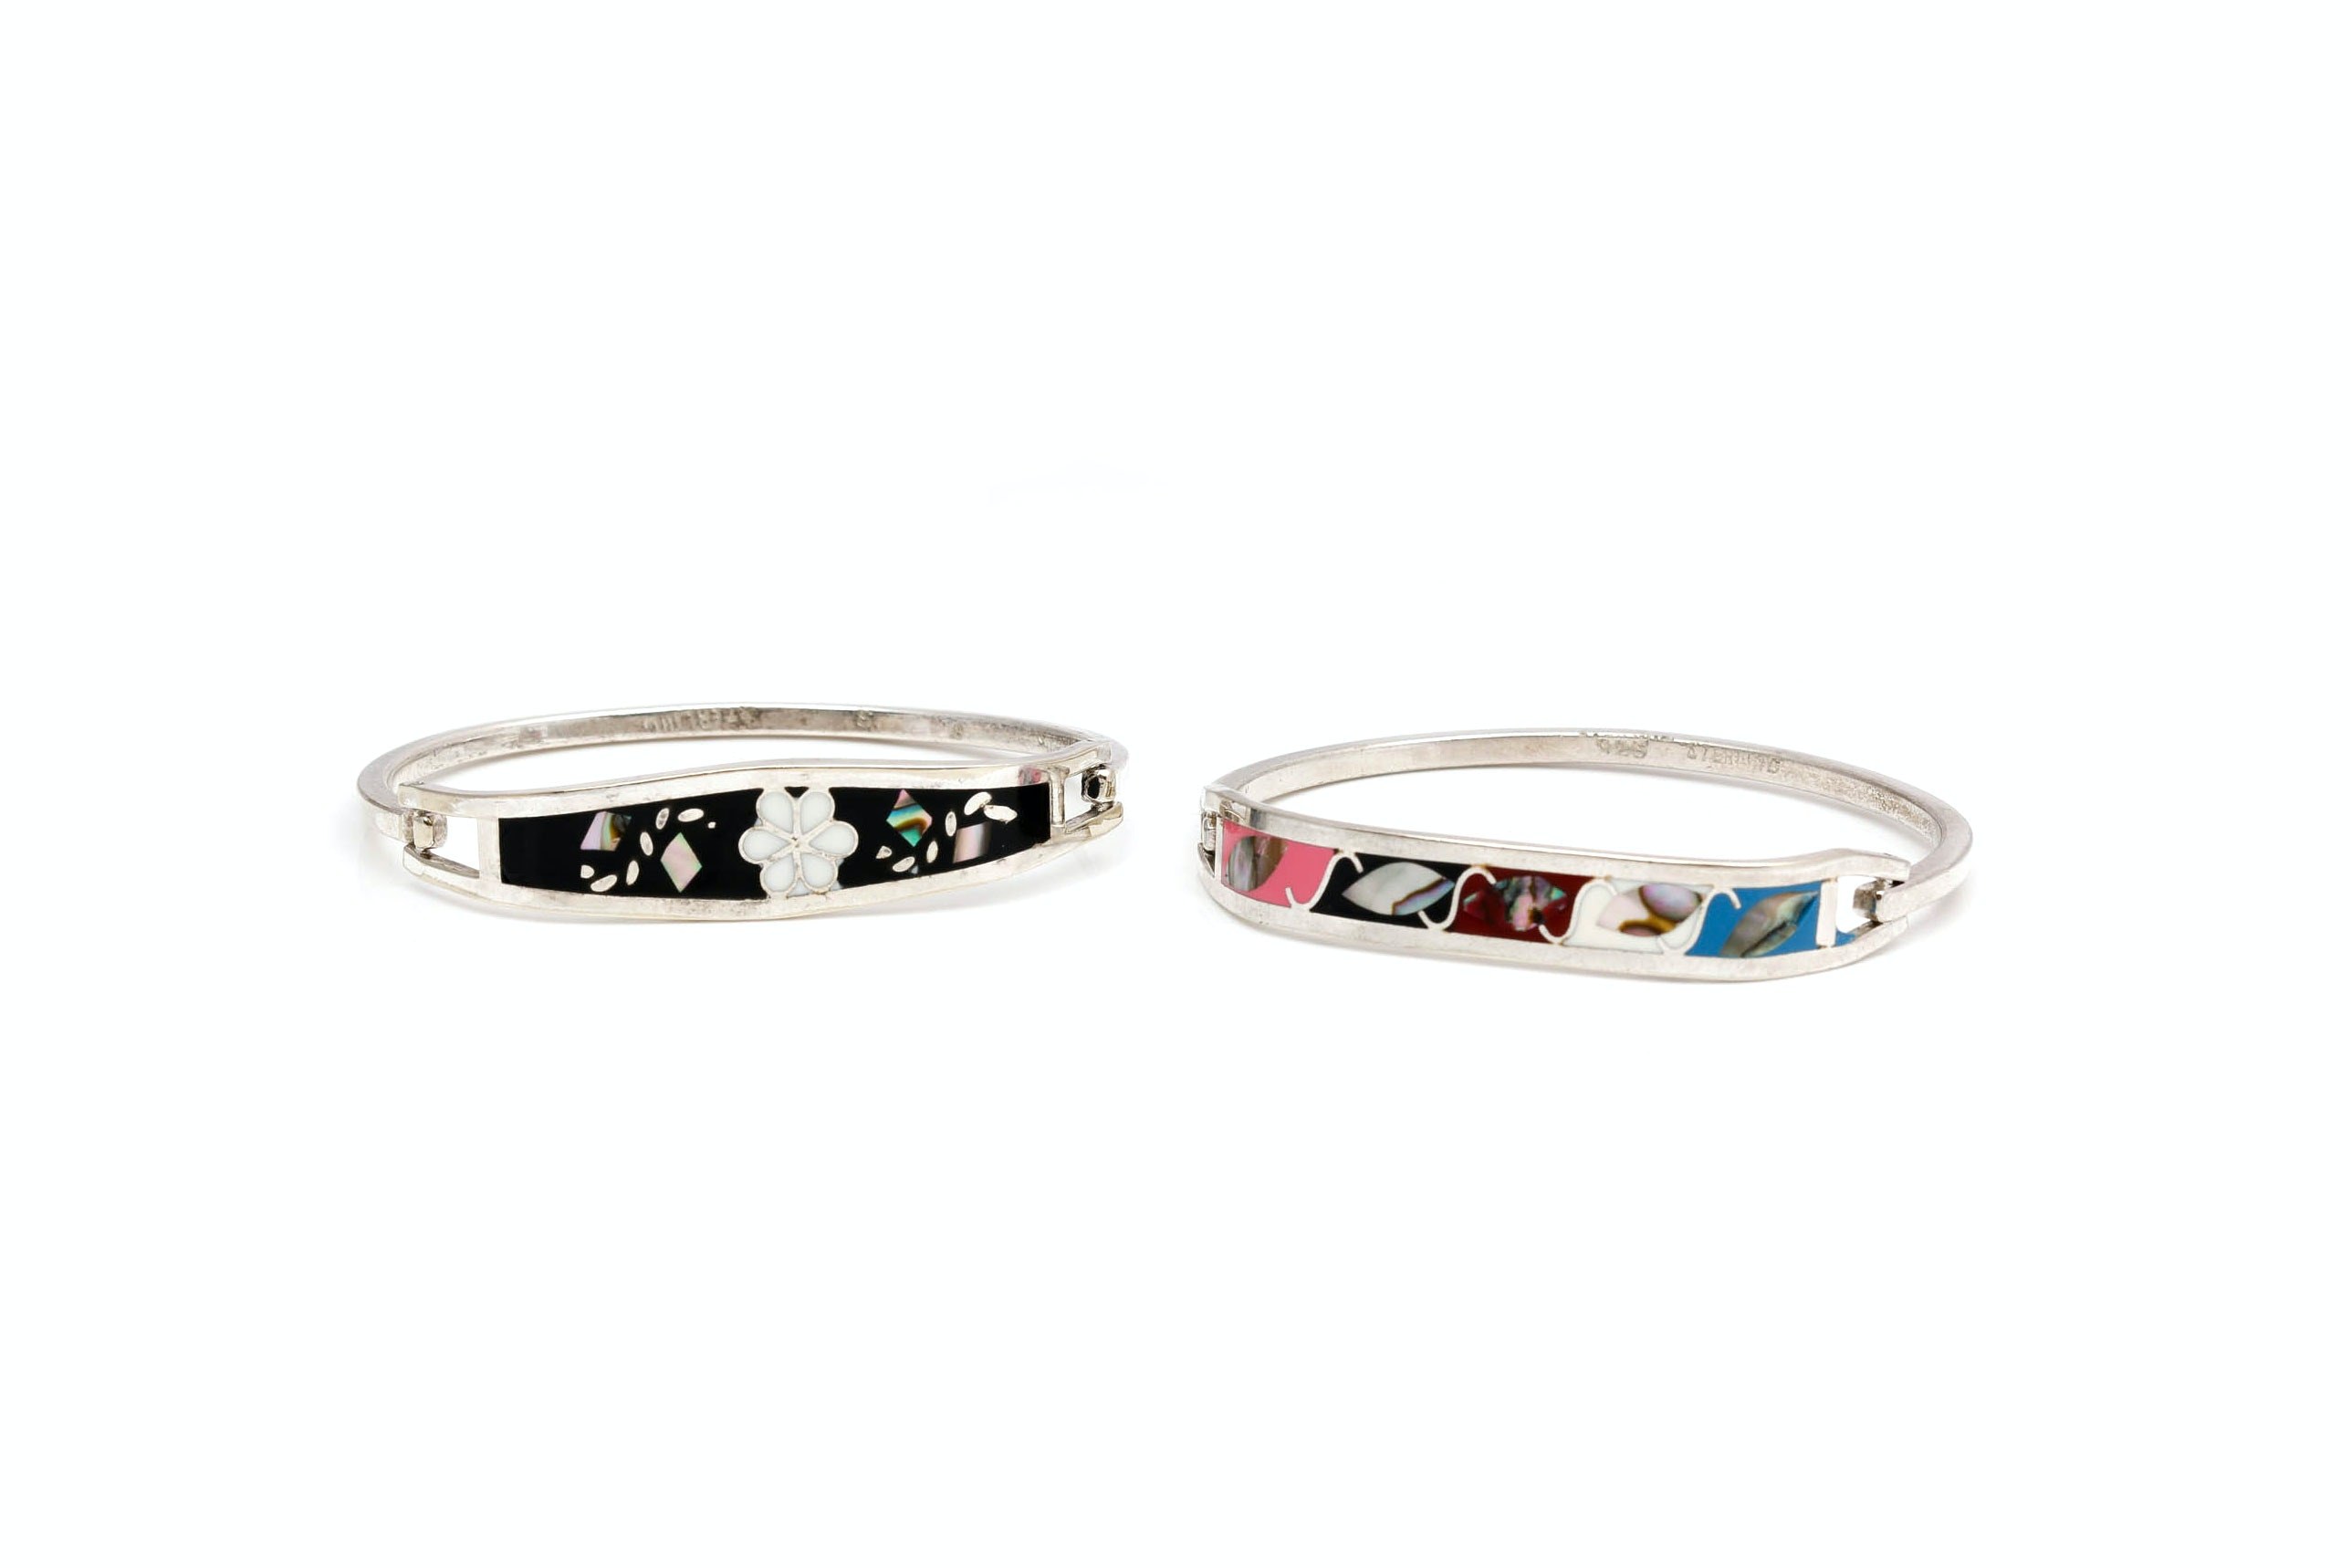 Sterling Silver Mother of Pearl and Enamel Bangles